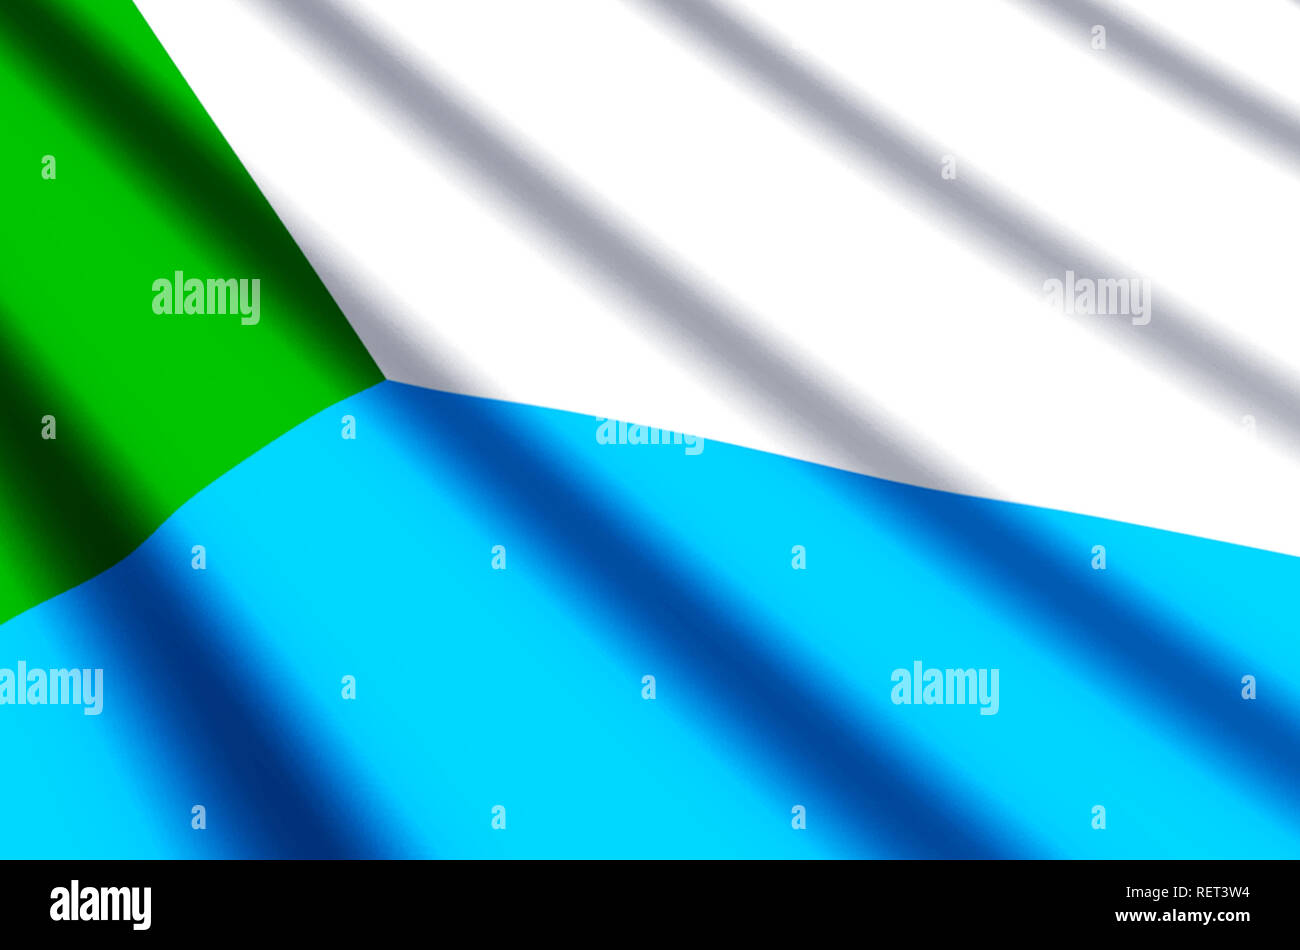 Khabarovsk waving and closeup flag illustration. Perfect for background or texture purposes. - Stock Image